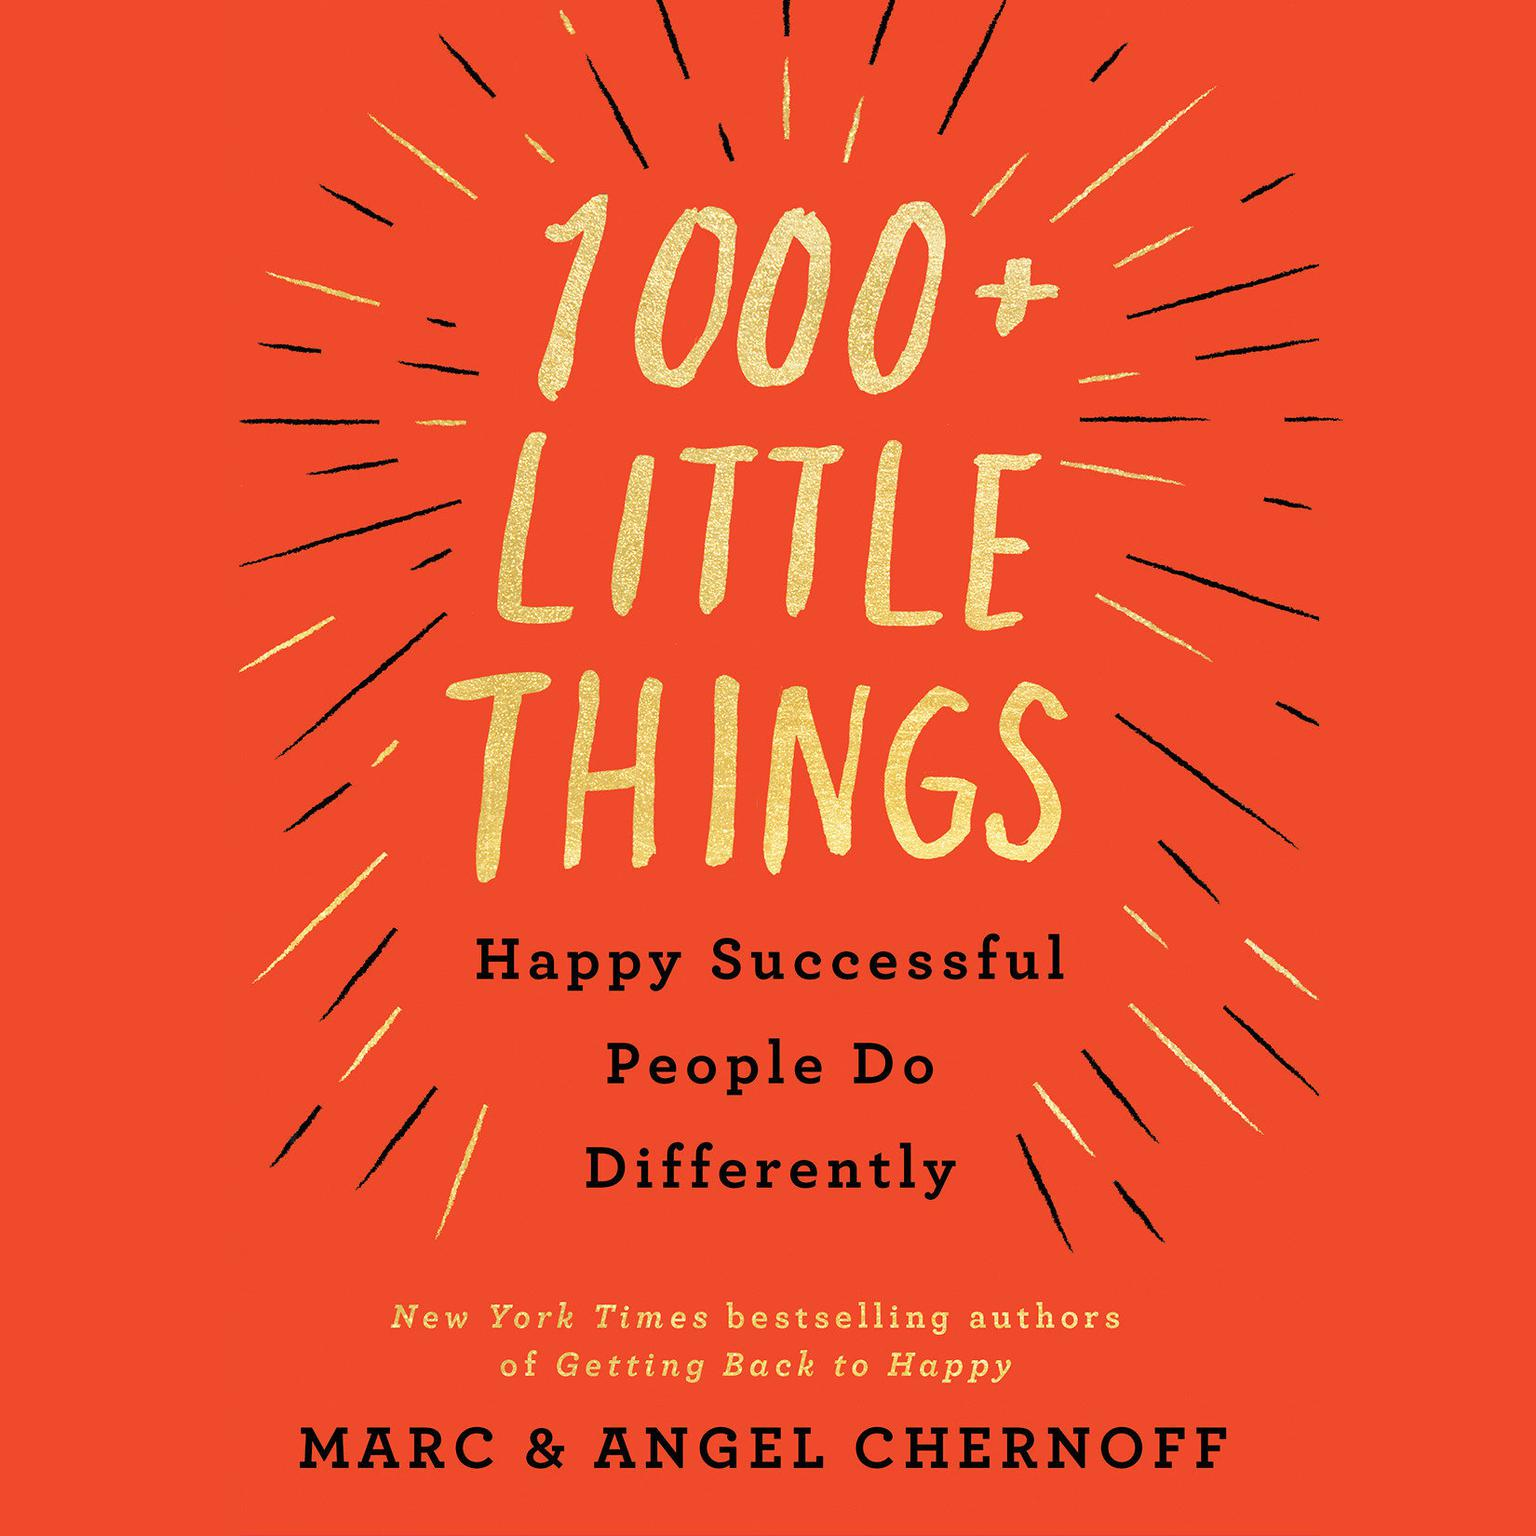 Printable 1000+ Little Things Happy Successful People Do Differently Audiobook Cover Art